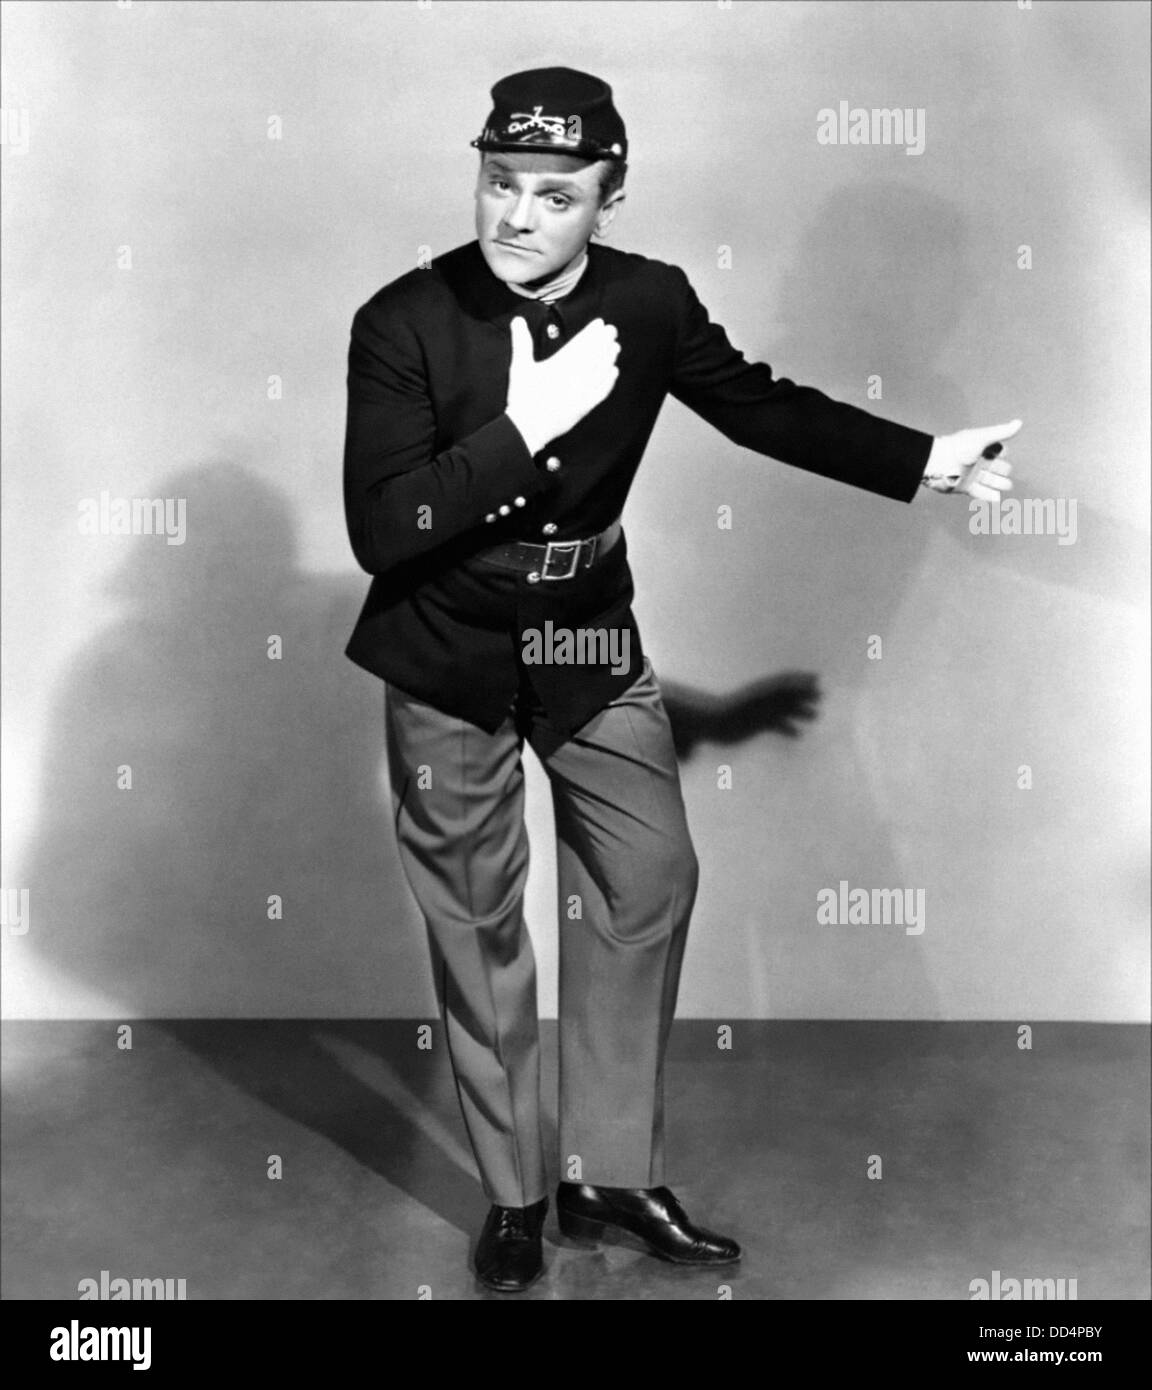 YANKEE DOODLE DANDY - James Cagney - Directed by Michael Curtiz - Warner Bros First National 1942 - Stock Image